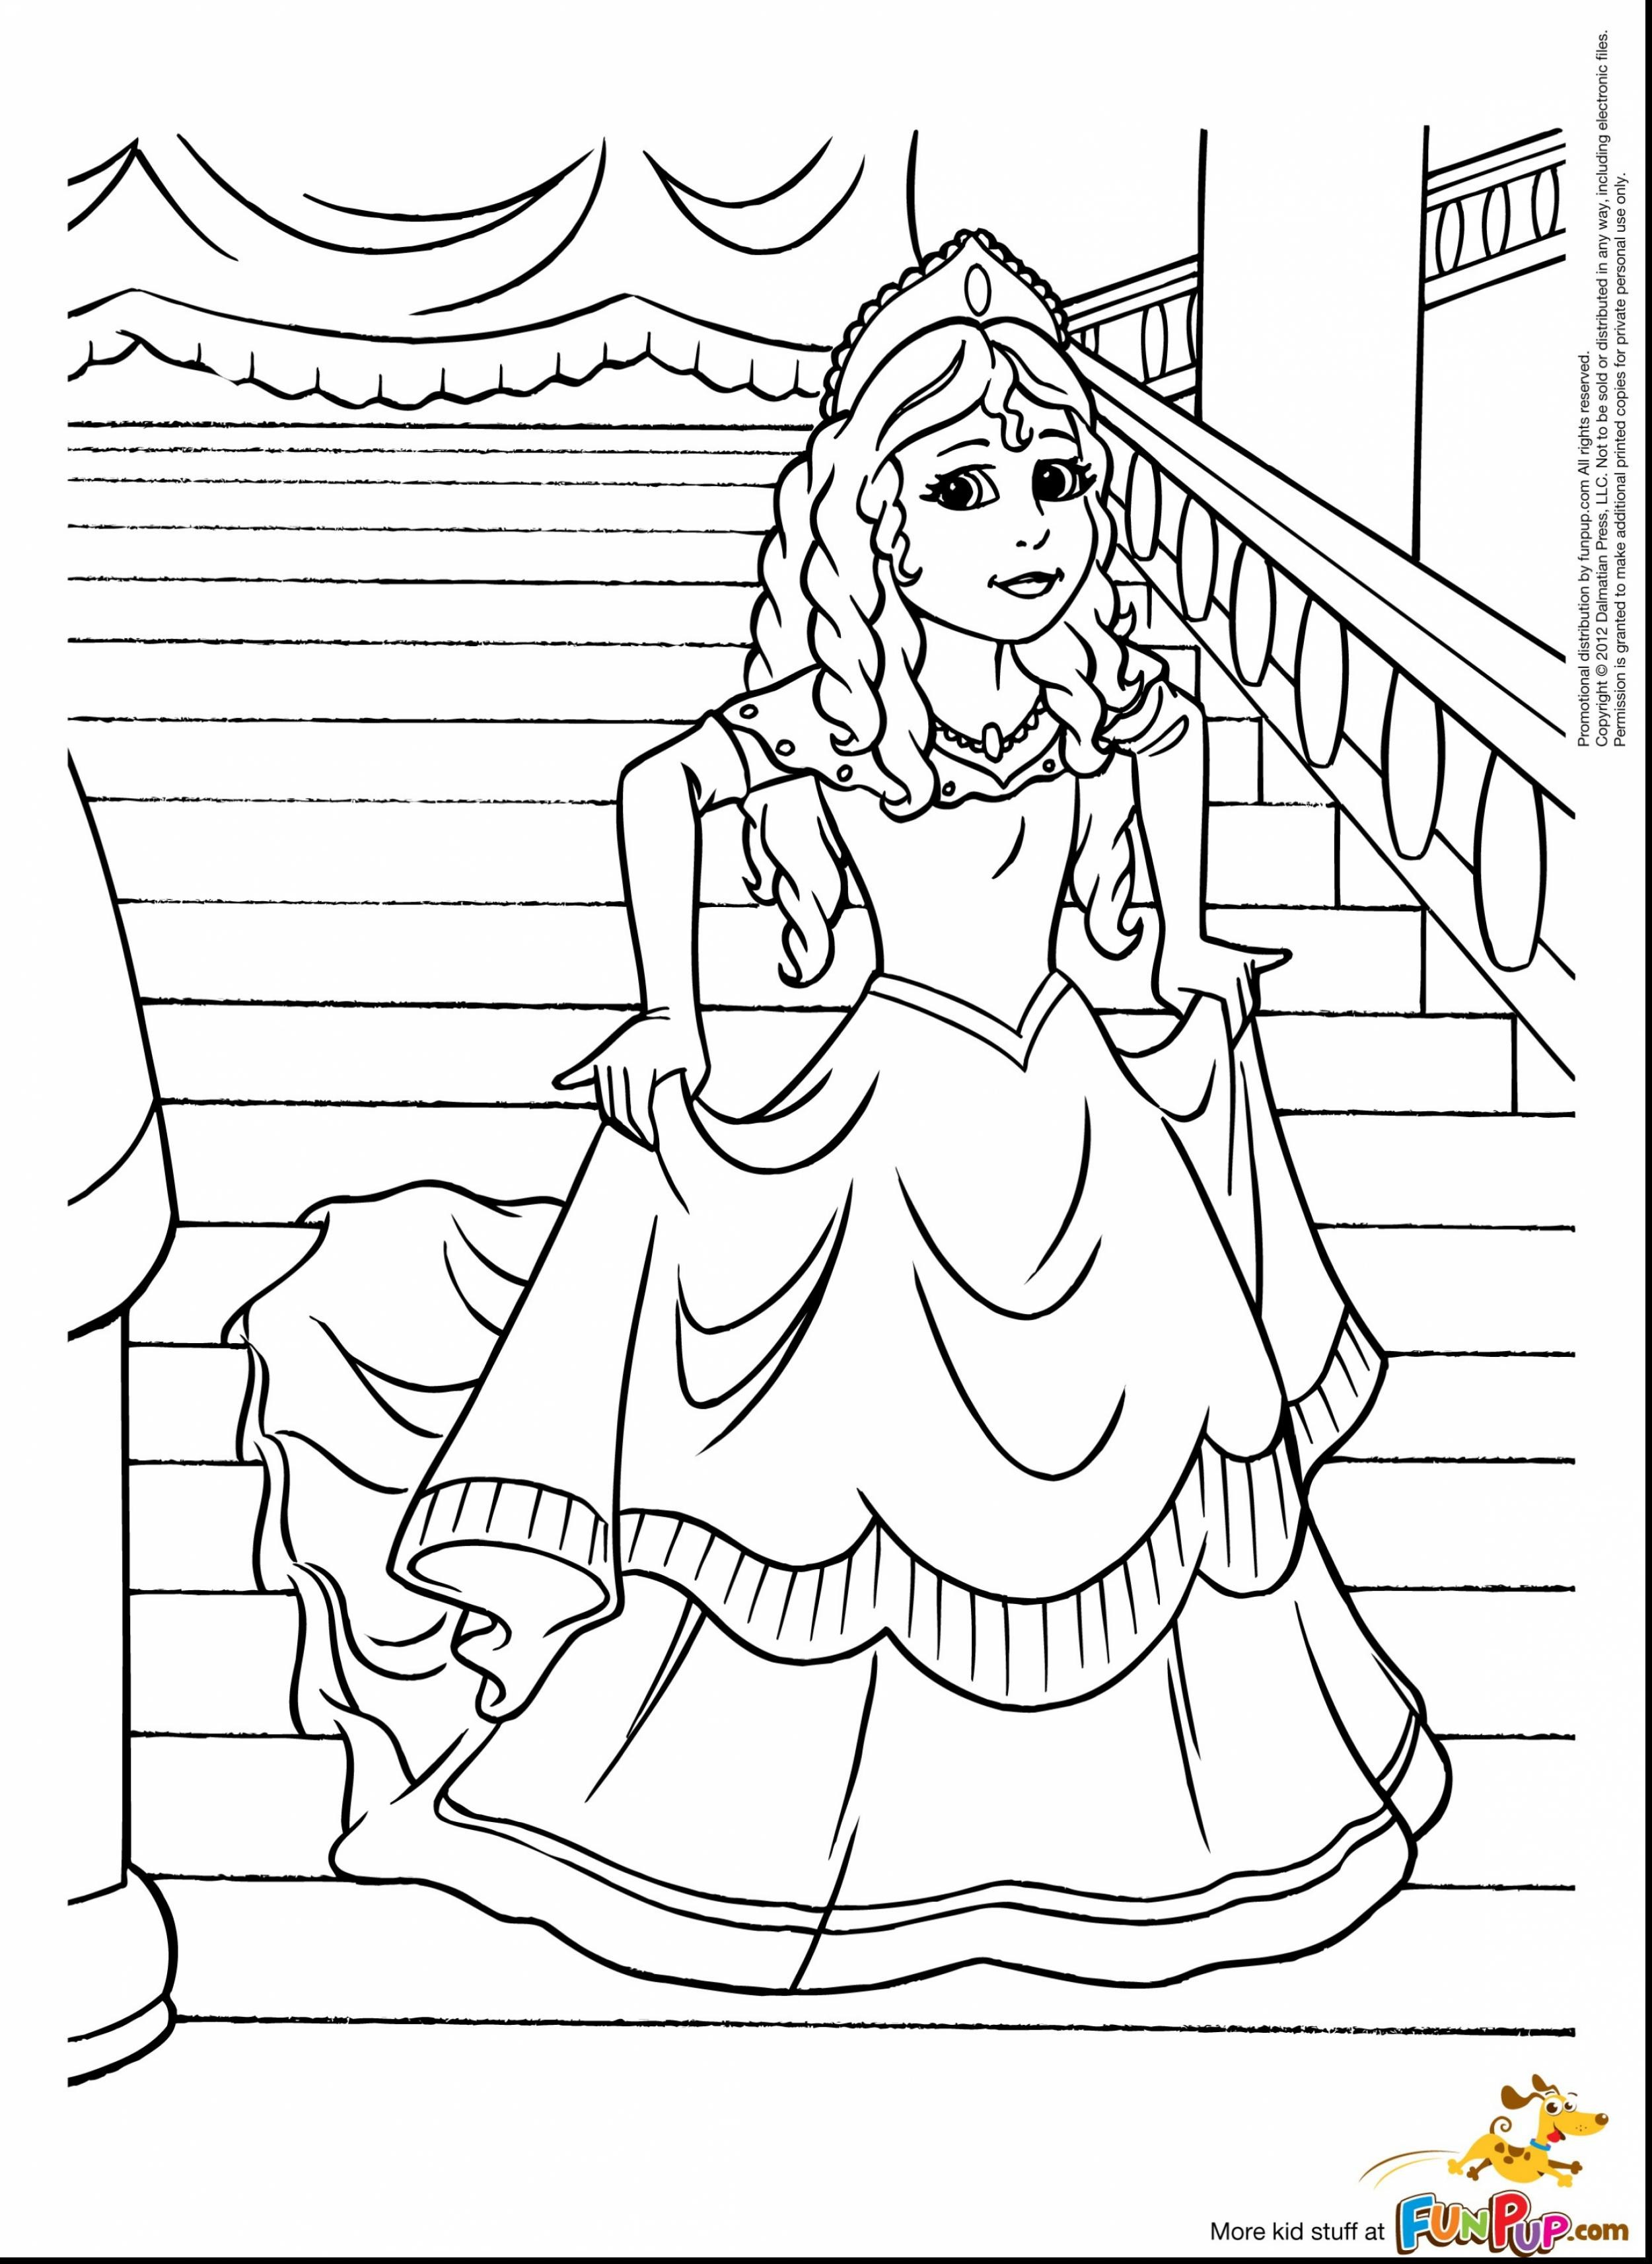 2501x3427 Princess Castle Coloring Page Lovely Beautiful Gorillaz Coloring